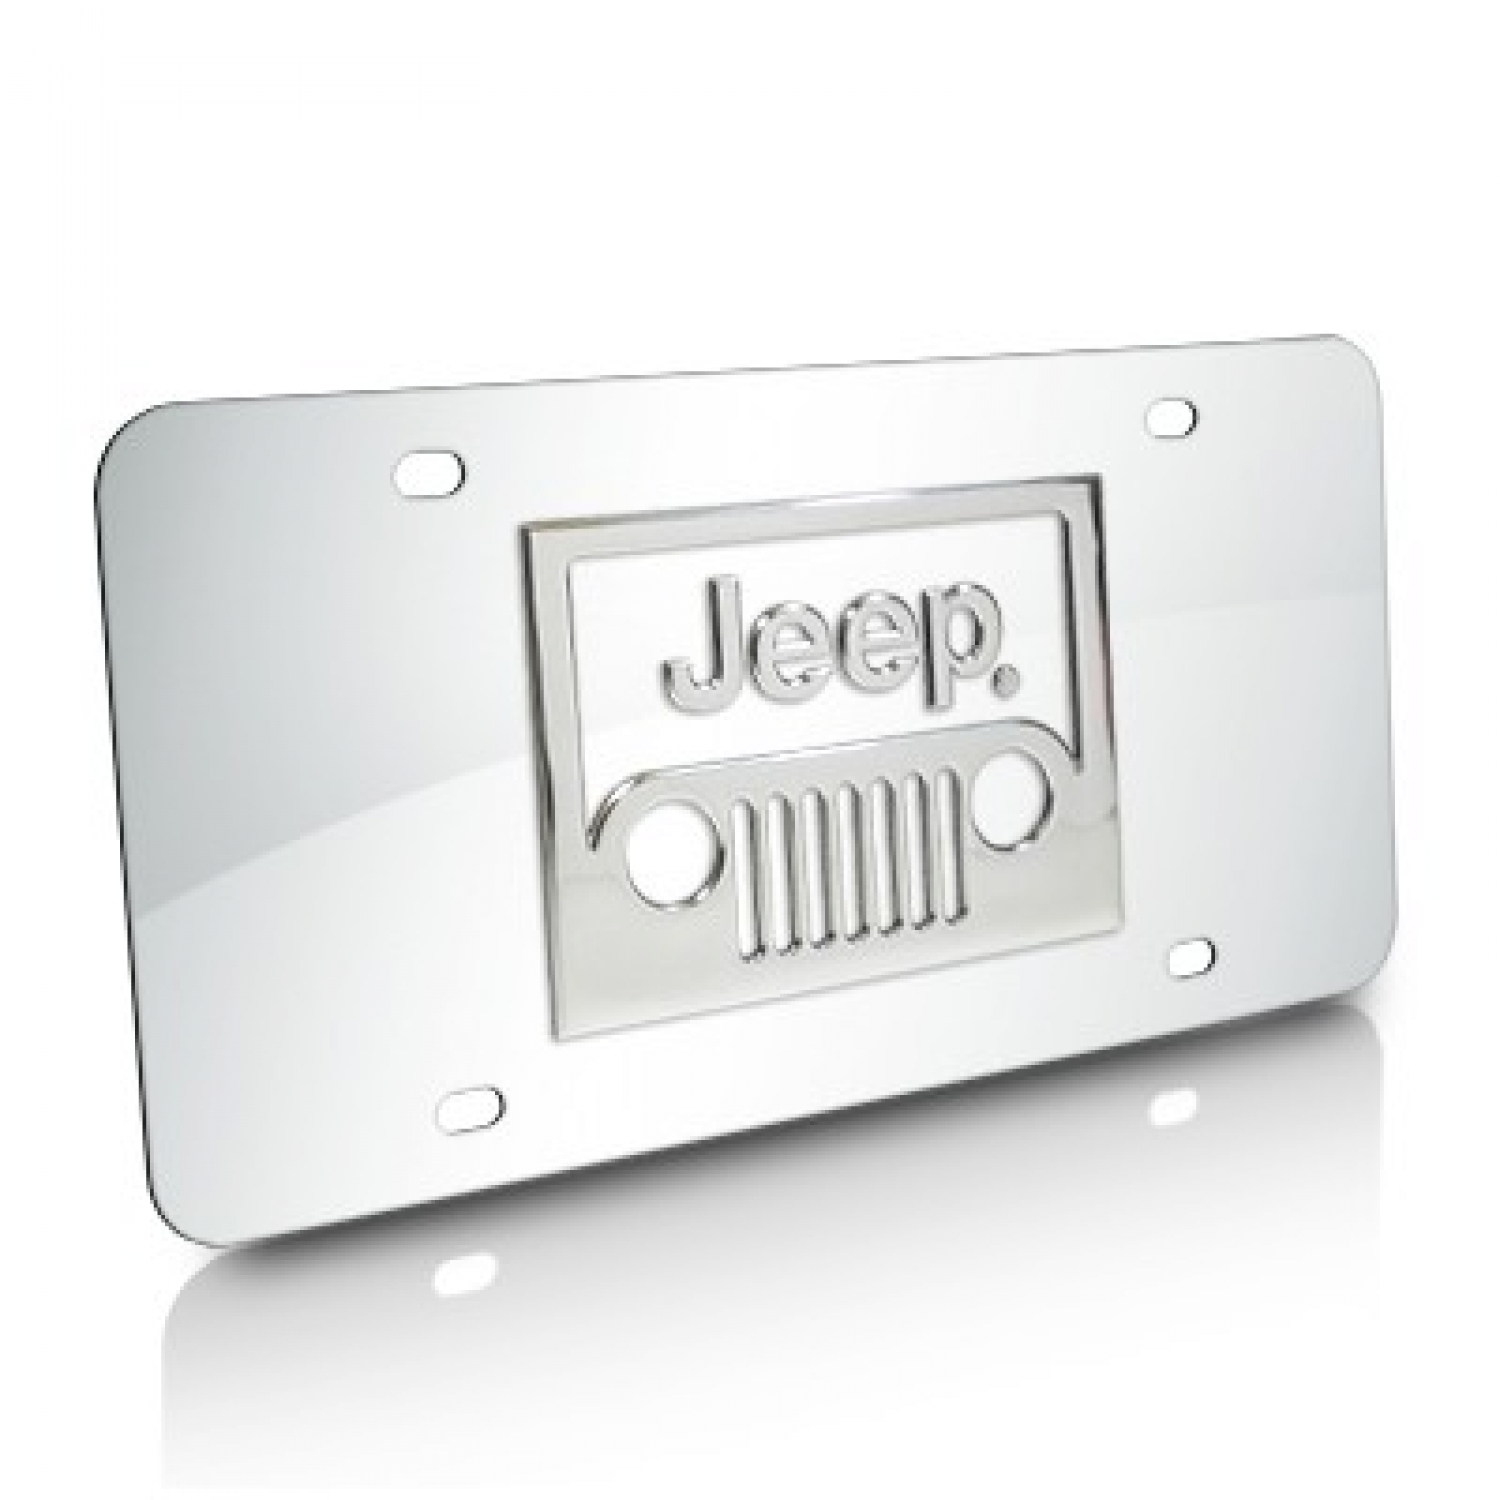 Jeep Grille 3D Logo Chrome Stainless Steel License Plate